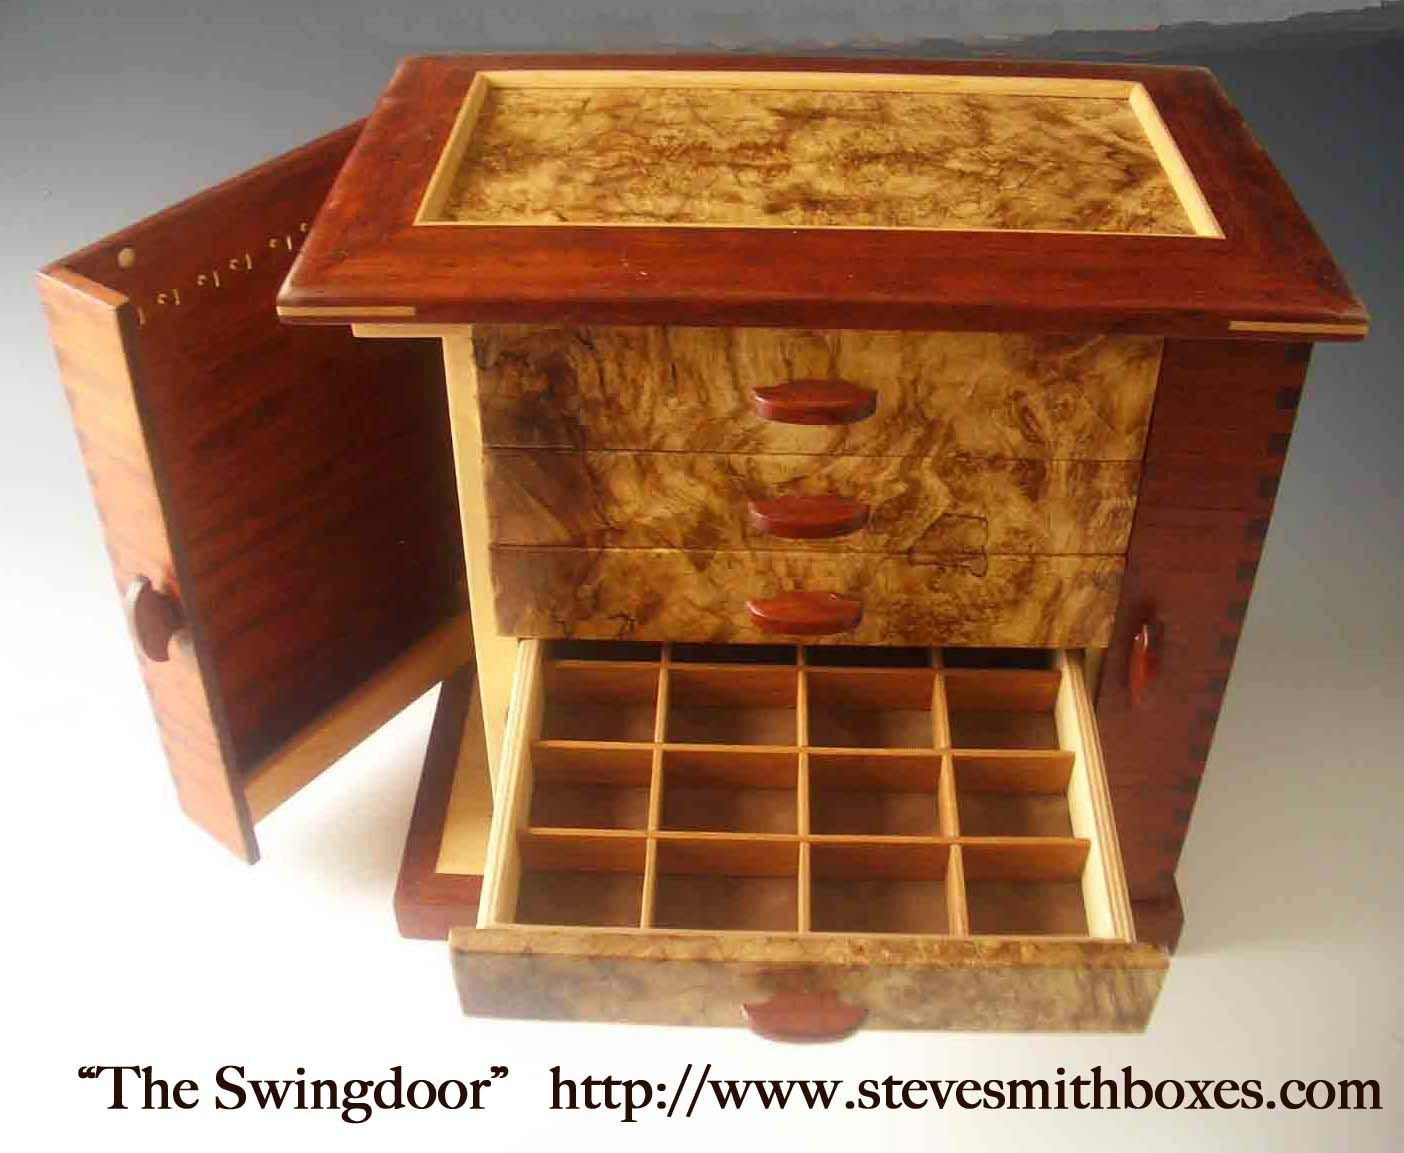 Handmade wooden jewelry boxes, keepsake boxes, and mens valet boxes; which make perfect unique gift ideas for women and men!